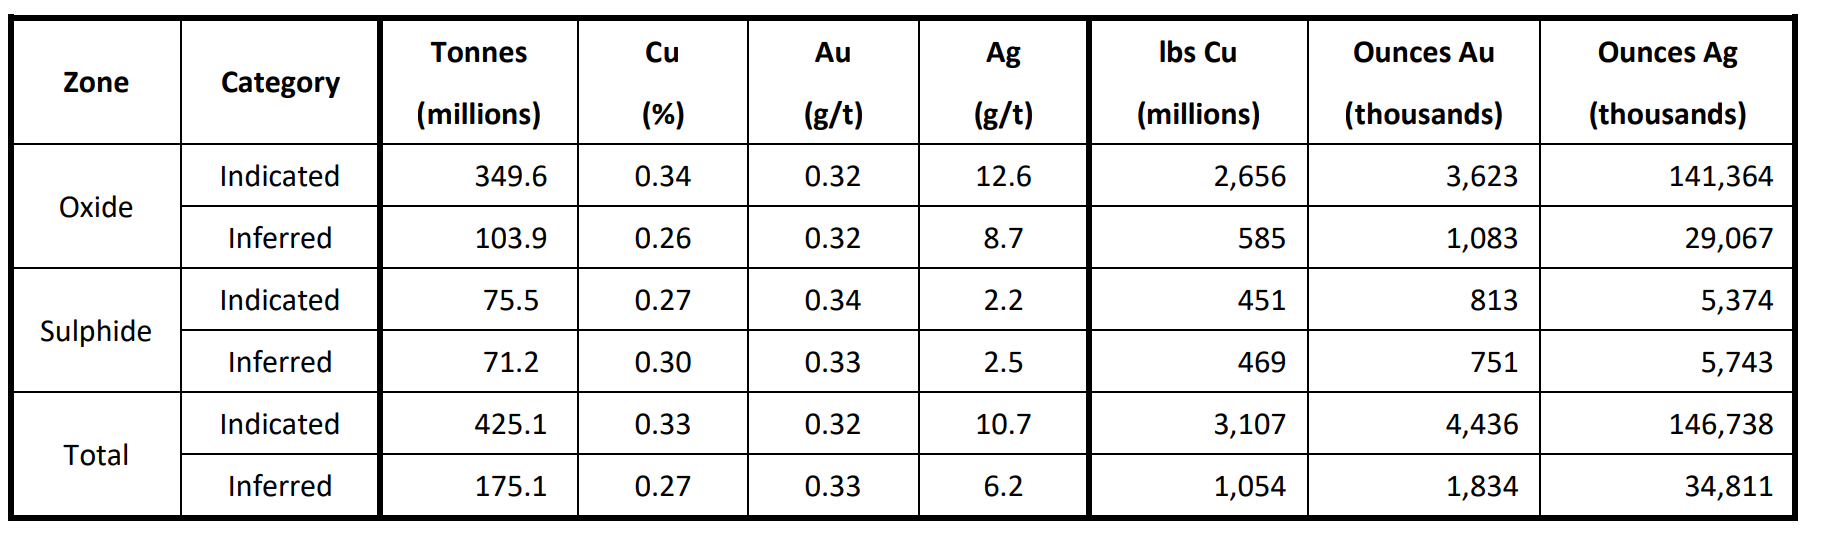 Notes to accompany Filo del Sol Mineral Resource table:   1. Mineral Resources have an effective date of 11 June 2018; 5  2. The Qualified Person for the resource estimate is James N. Gray, P.Geo. of Advantage Geoservices Ltd.; 3. The Mineral Resources were estimated in accordance with the CIM Definition Standards for Mineral Resources and Reserves;  4. Sulphide copper equivalent (CuEq) assumes metallurgical recoveries of 84% for copper, 70% for gold and 77% for silver based on similar deposits, as no metallurgical testwork has been done the Sulphide mineralization, and metal prices of US$3/lb copper, US$1300/oz gold, US$20/oz silver. The CuEq formula is: CuEq=Cu+Ag*0.0089+Au*0.5266;  5. All figures are rounded to reflect the relative accuracy of the estimate;  6. Mineral Resources are not Mineral Reserves and do not have demonstrated economic viability;  7. The resource was constrained by a Whittle® pit shell using the following parameters: Cu $3/lb, Ag $20/oz, Au $1300/oz, slope of 45°, a mining cost of $2.50/t and an average process cost of $13.26/t;  8. Cutoff grades are 0.2 g/t Au for the AuOx material, 0.15% CuEq for the CuAuOx material and 20 g/t Ag for the Ag material. These three mineralization types have been amalgamated in the Oxide total above. CuAuOx copper equivalent (CuEq) assumes metallurgical recoveries of 82% for copper, 55% for gold and 71% for silver based on preliminary metallurgical testwork, and metal prices of US$3/lb copper, US$1300/oz gold, US$20/oz silver. The CuEq formula is: CuEq=Cu+Ag*0.0084+Au*0.4239.